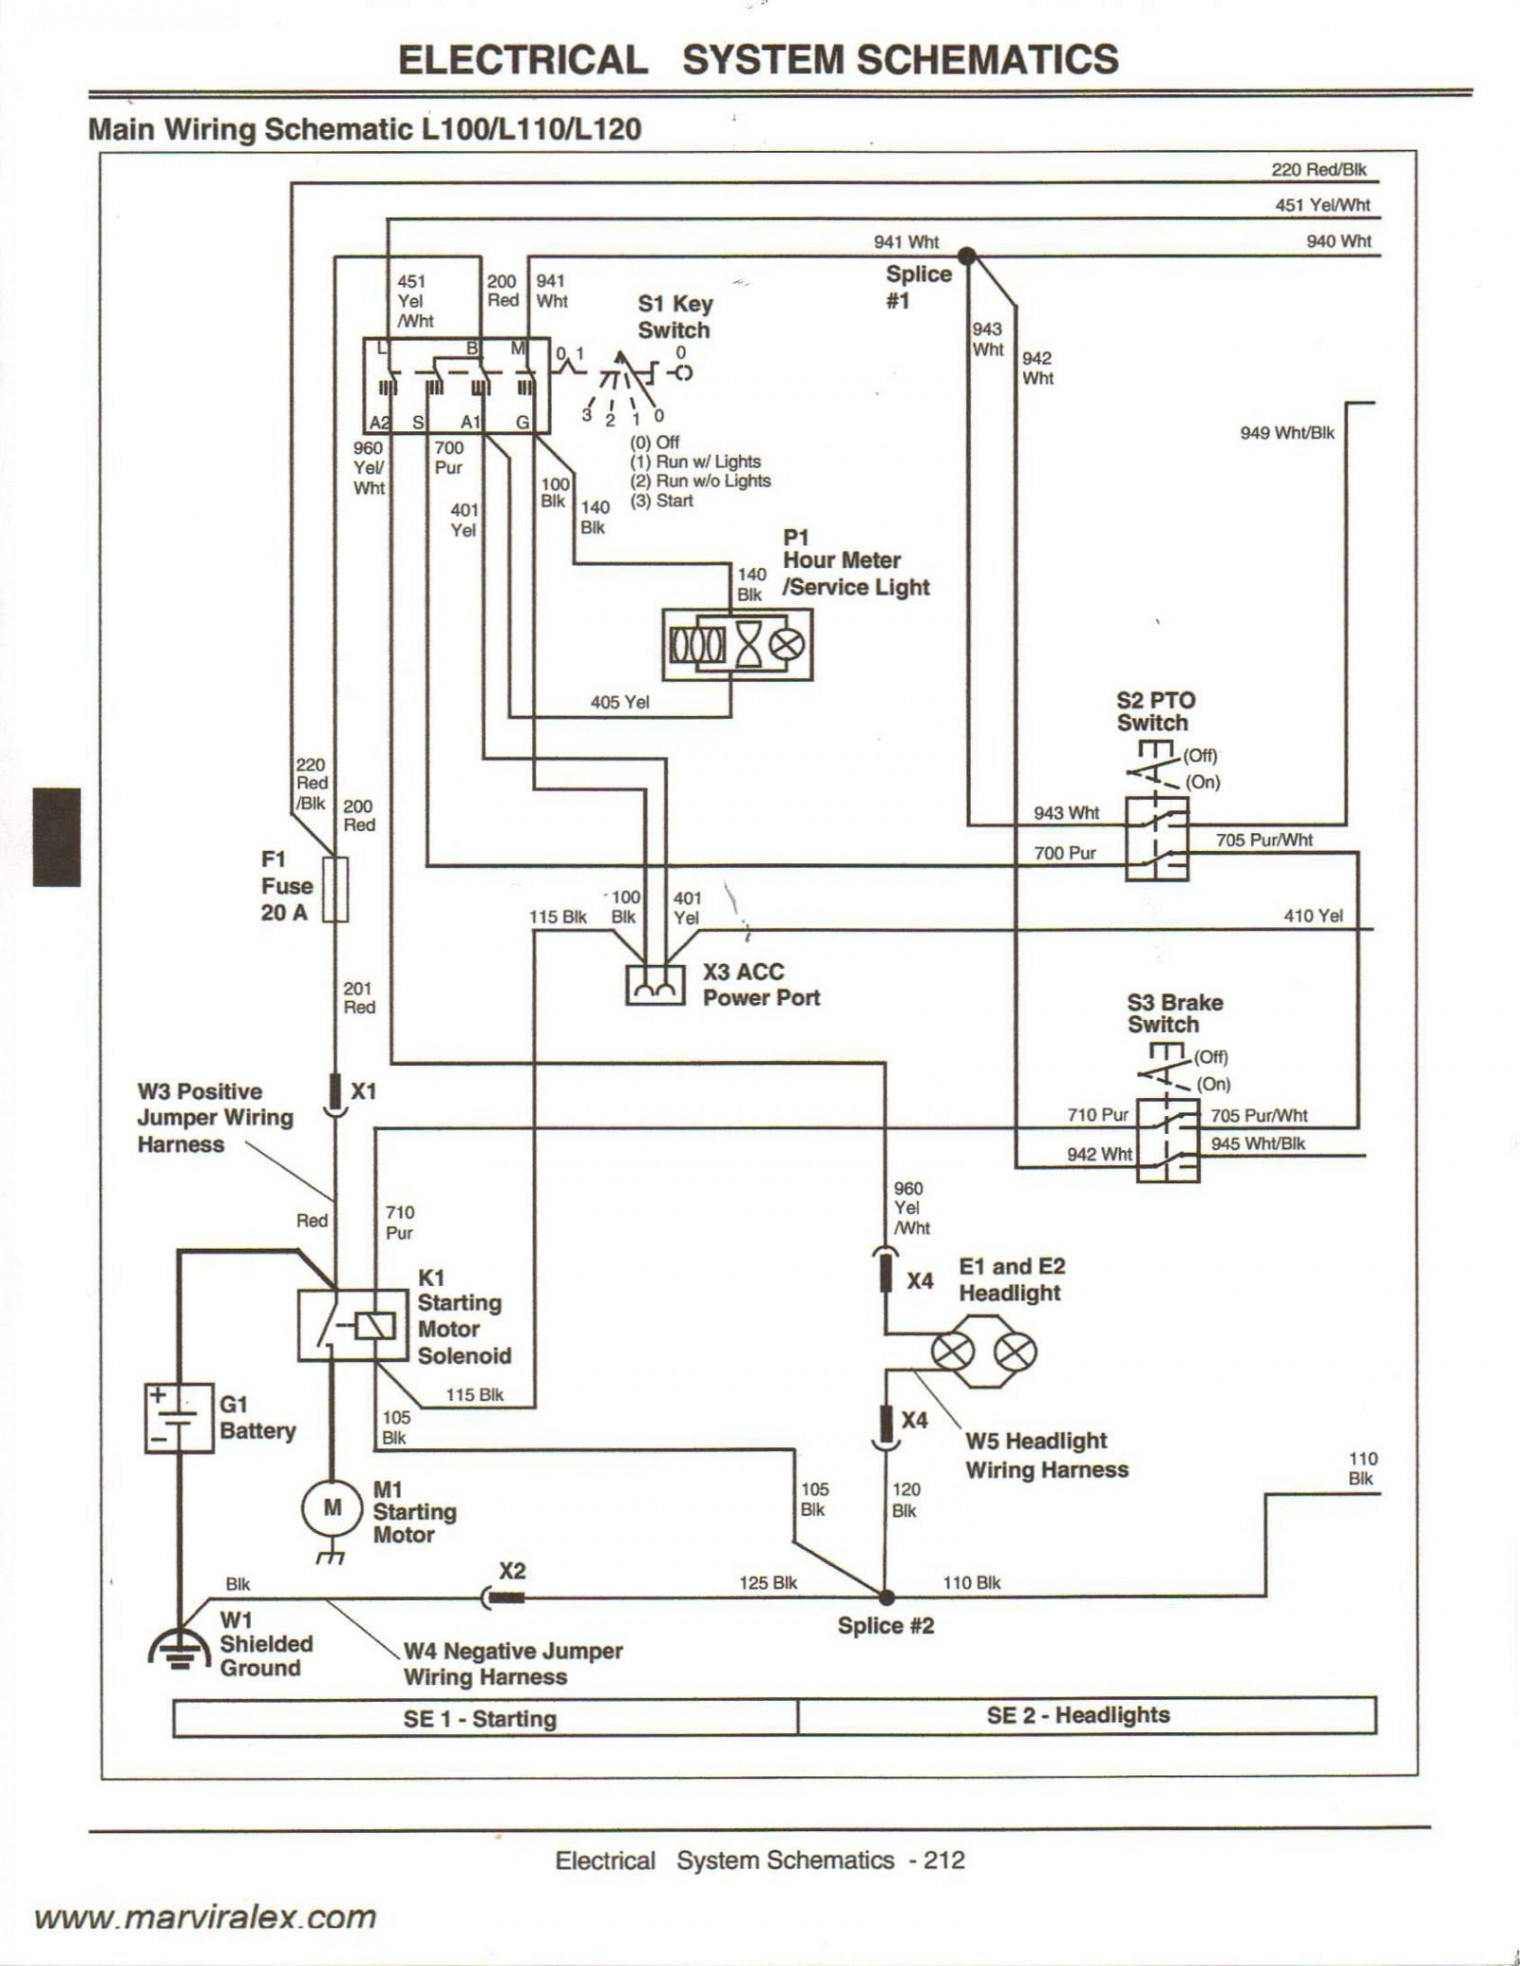 John Deere L130 Wiring Diagram Sample on john deere 445 wiring-diagram, john deere m wiring-diagram, john deere d140 wiring diagram, john deere la165 wiring diagram, john deere la140 wiring diagram, john deere 345 kawasaki wiring diagrams, john deere la115 wiring diagram, john deere lx277 wiring-diagram, john deere la125 wiring diagram, john deere 212 wiring-diagram, john deere wiring harness diagram, john deere 322 wiring-diagram, john deere d170 wiring diagram, john deere l120 mower deck parts diagram, john deere gt235 wiring-diagram, john deere mower wiring diagram, john deere la120 wiring diagram, john deere electrical diagrams, john deere voltage regulator wiring diagram, john deere 5103 wiring-diagram,